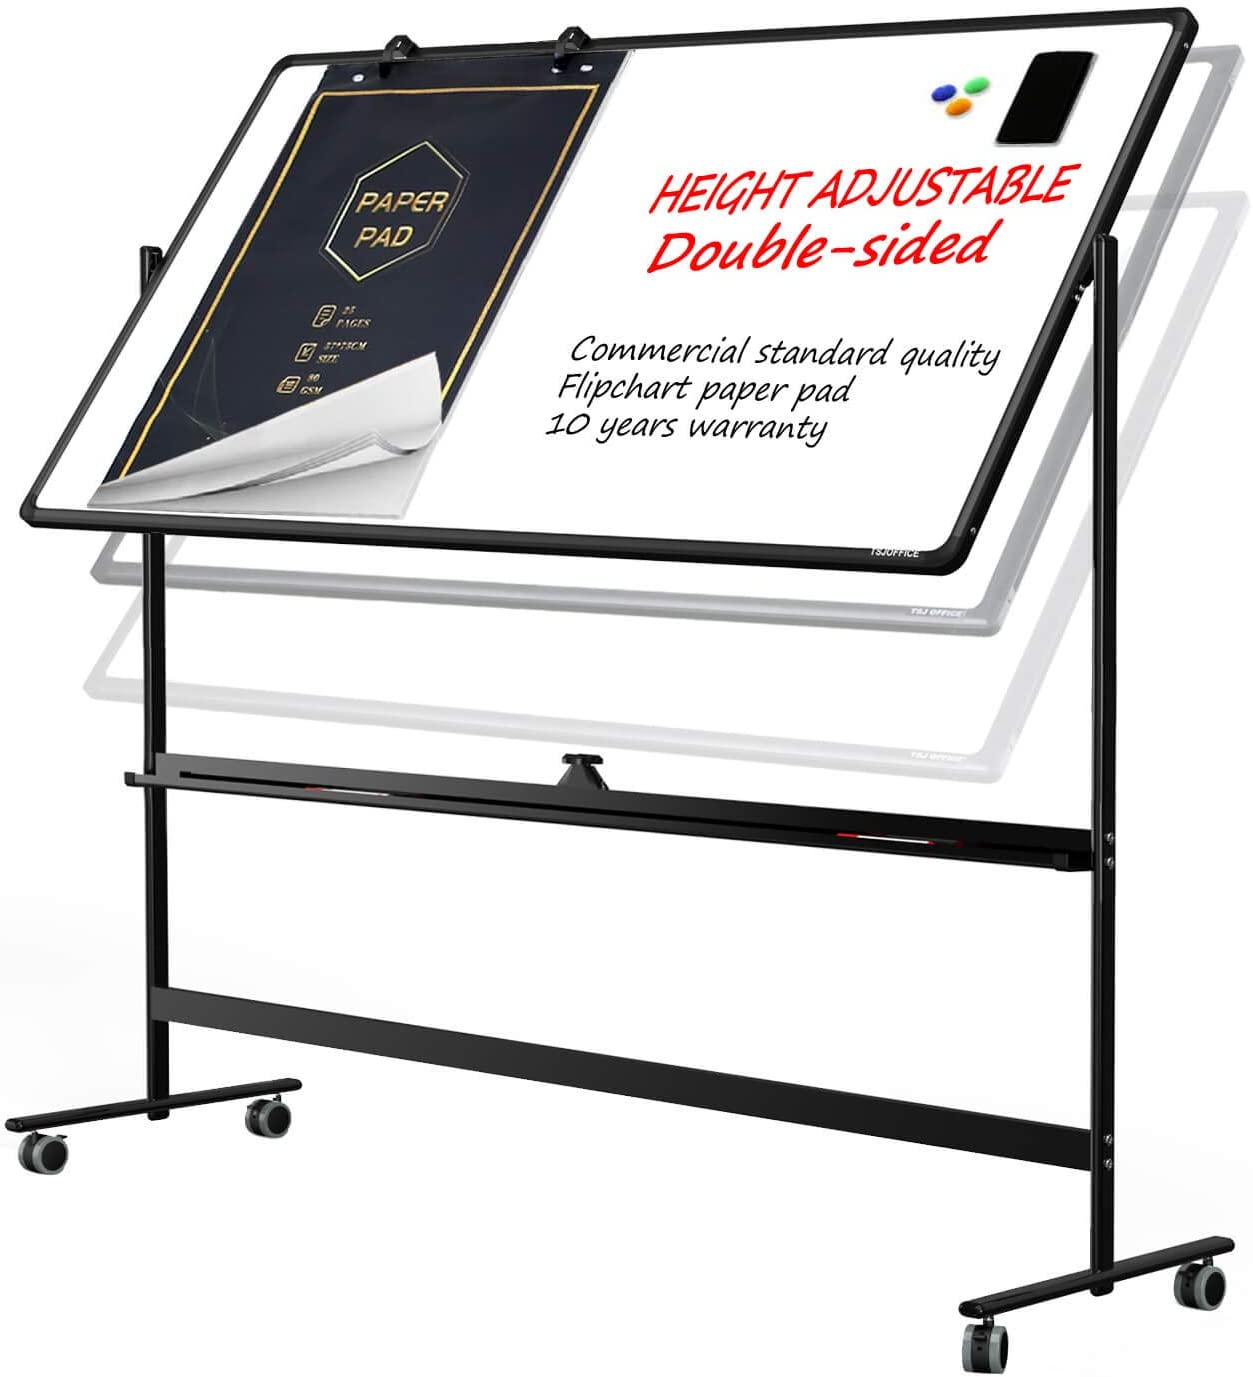 Large Mobile Rolling Magnetic Whiteboard - 48 x 32 Inches Height Adjust Double Sides Portable White Board on Wheels, Dry Erase Board Easel with Stand for Office, Home & Classroom